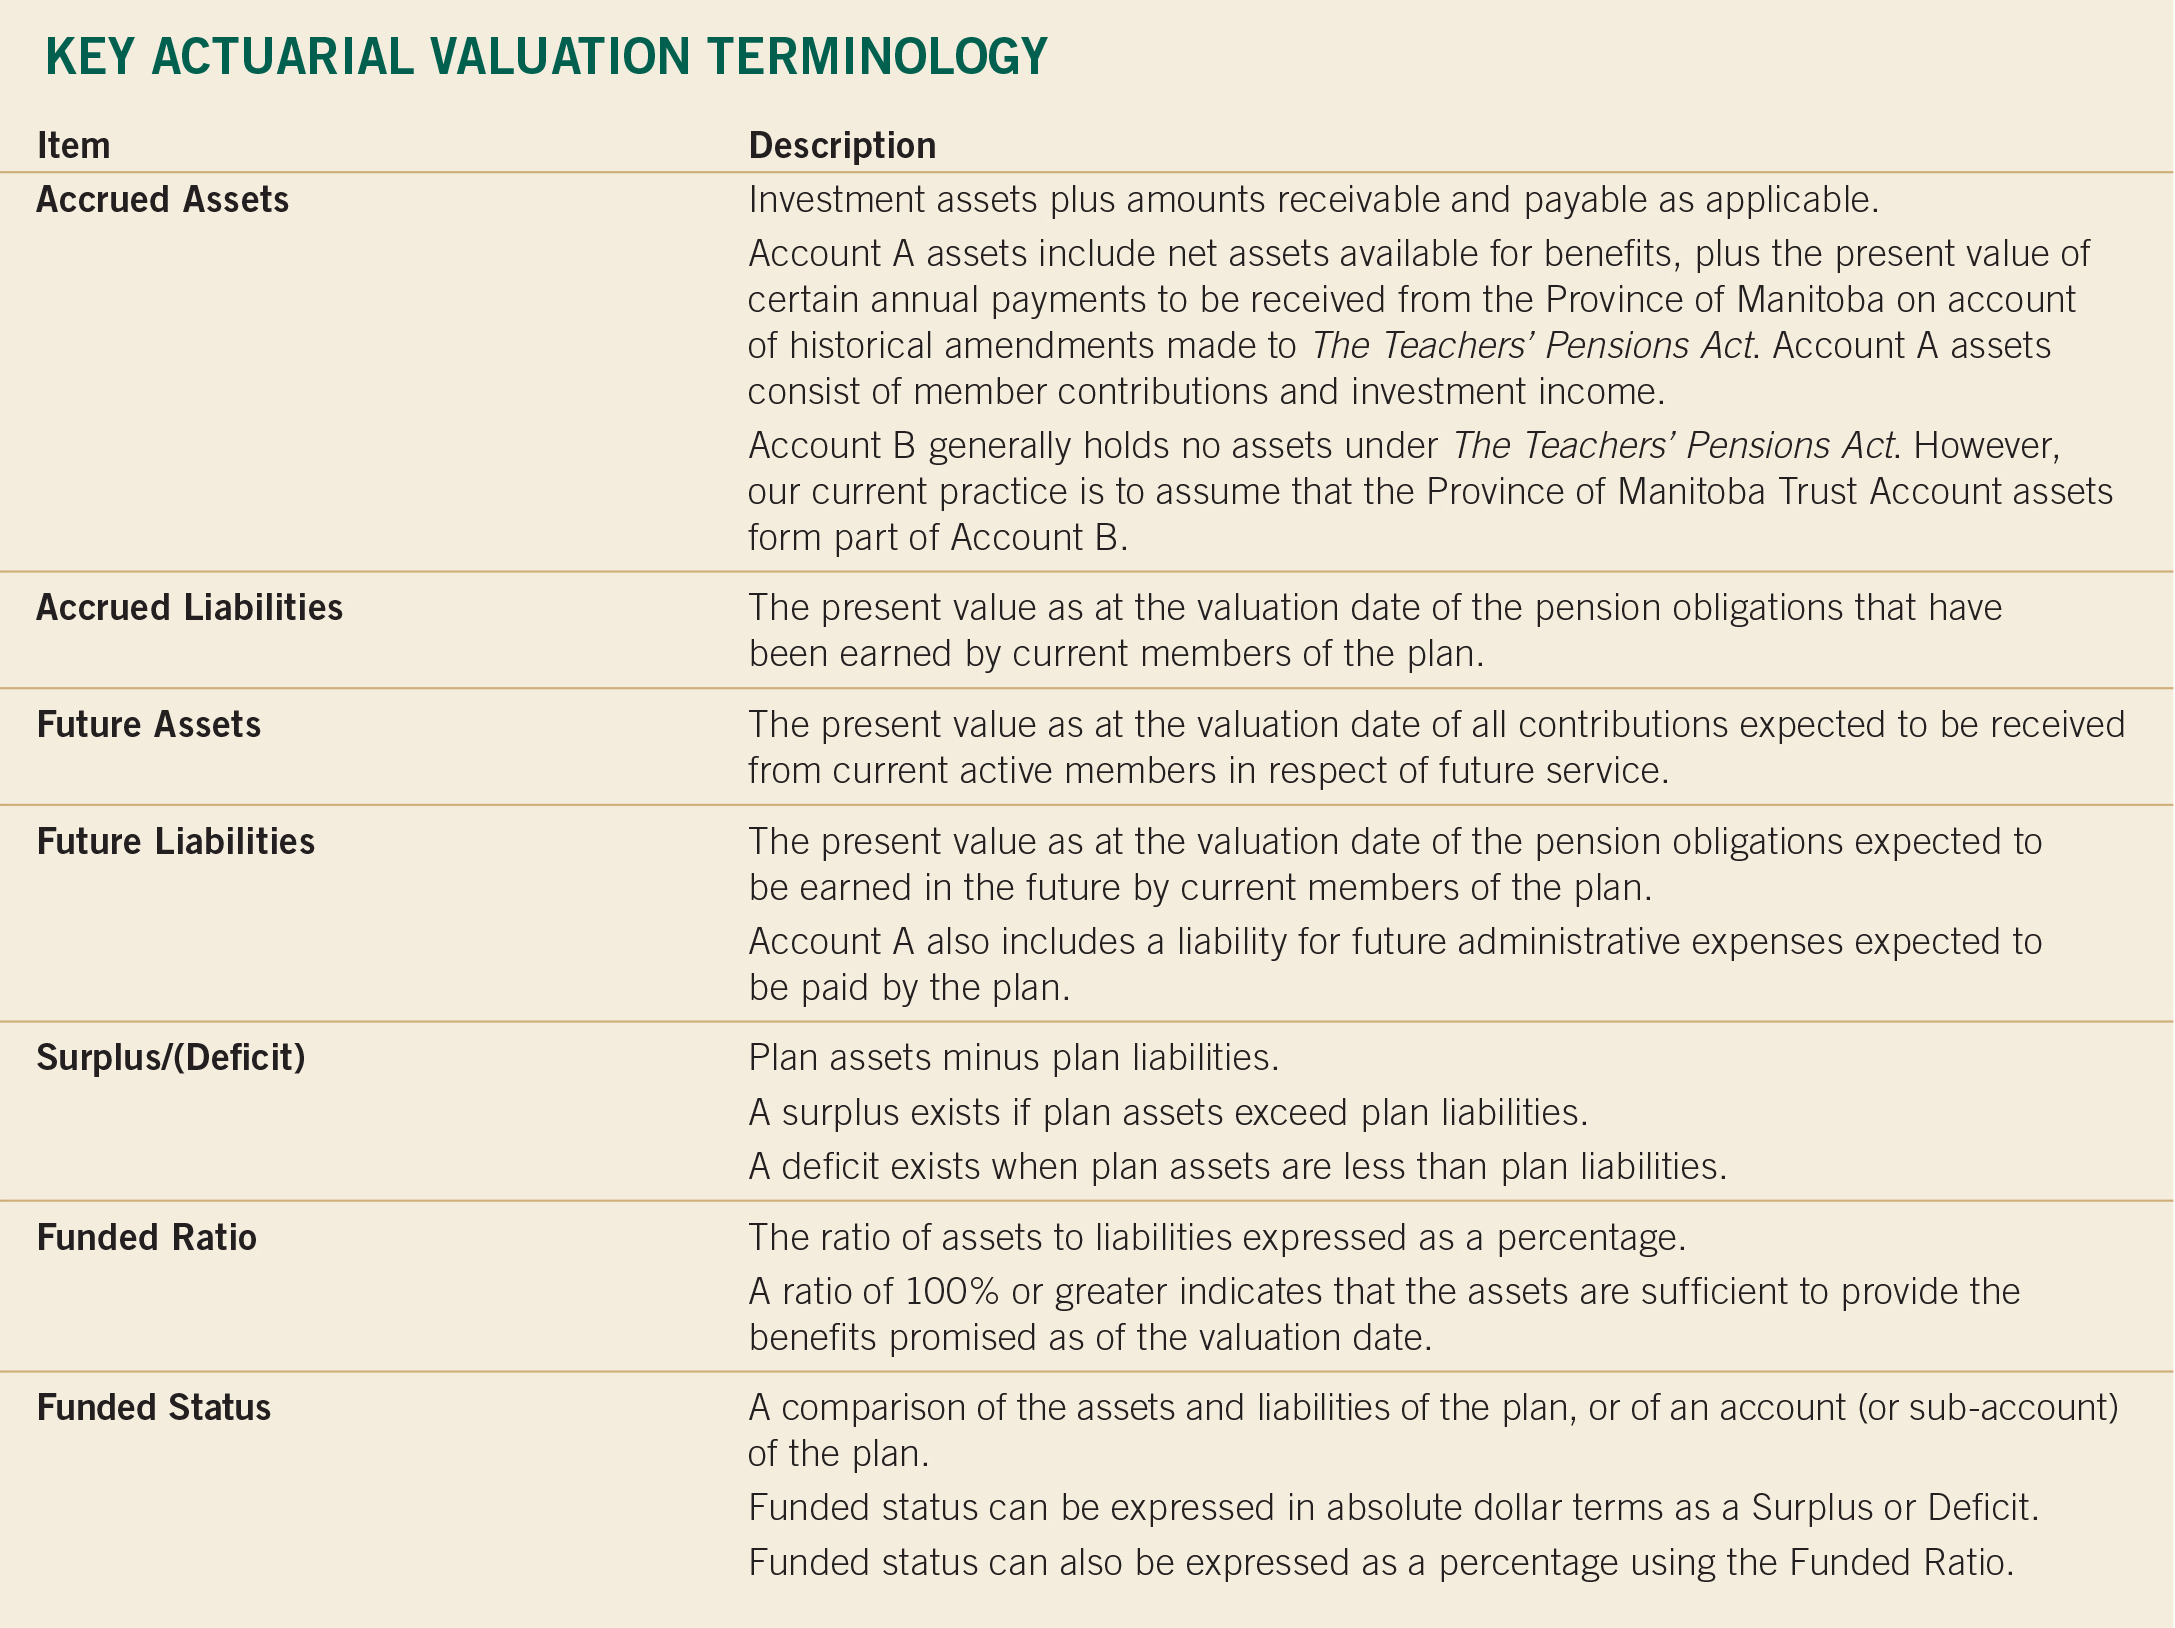 Key Actuarial Valuation Terminology v4